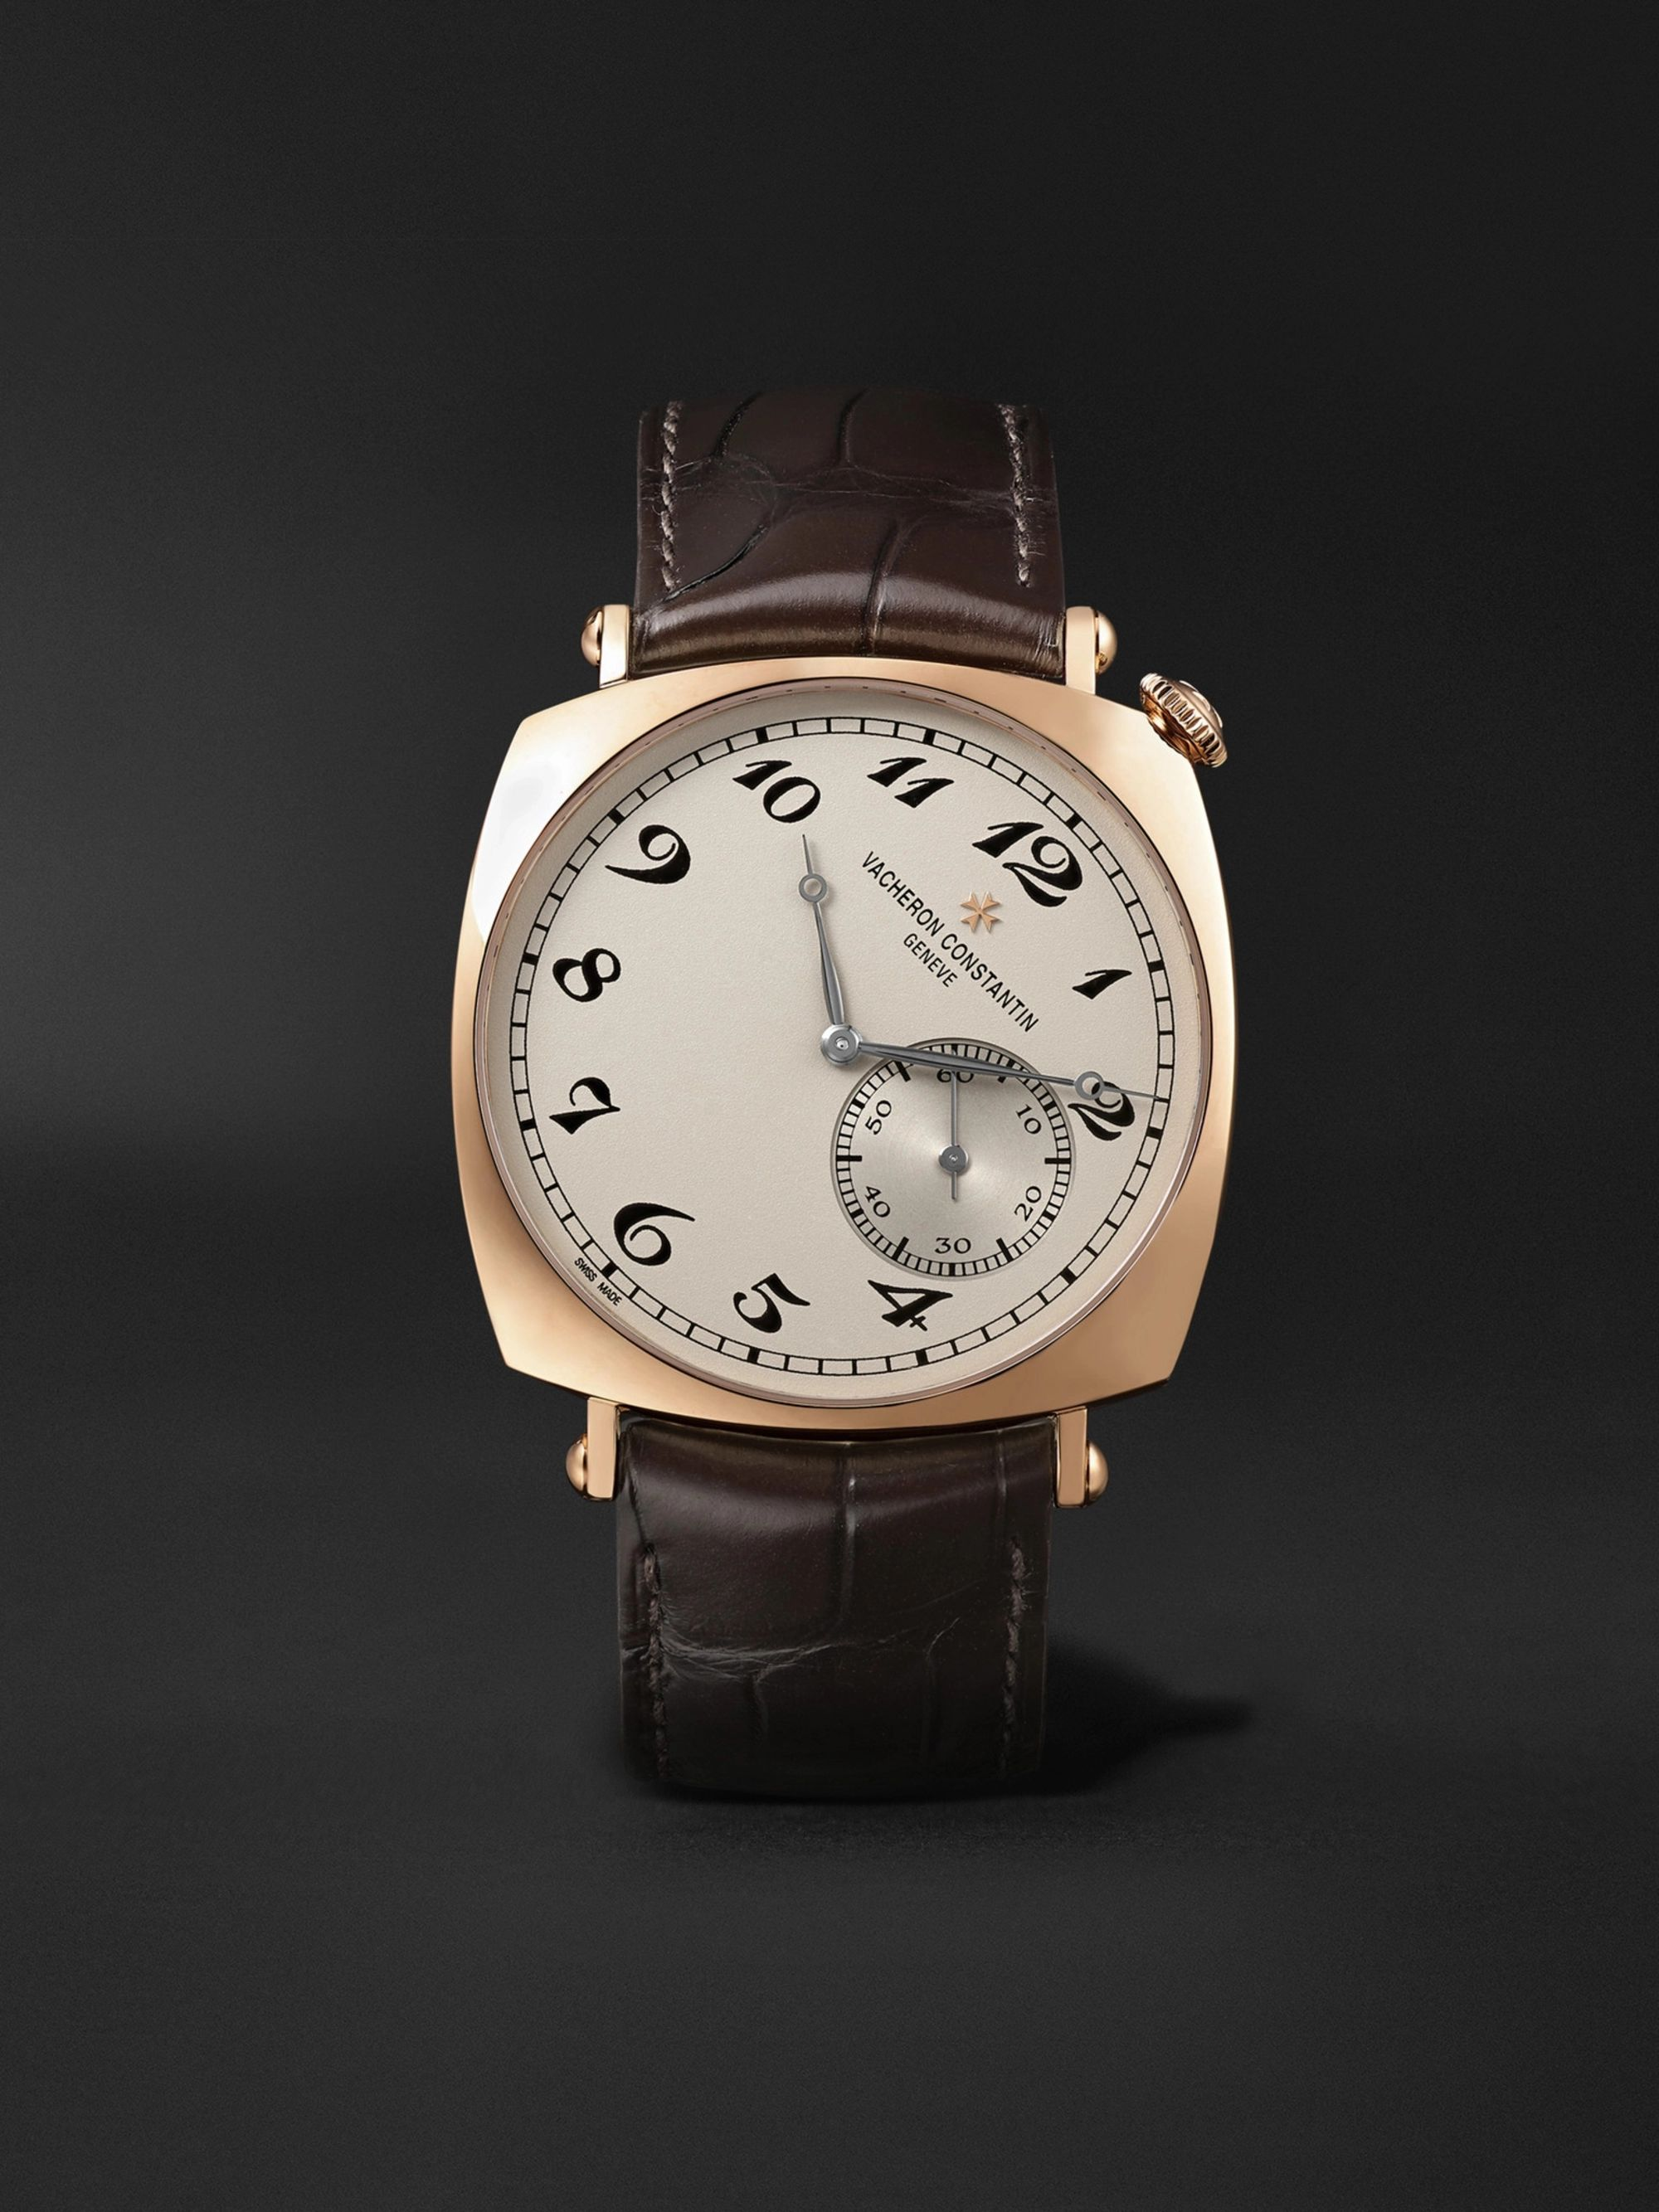 Vacheron Constantin Historiques American 1921 Hand-Wound 40mm 18-Karat Pink Gold and Alligator Watch, Ref. No. 82035/000R-9359